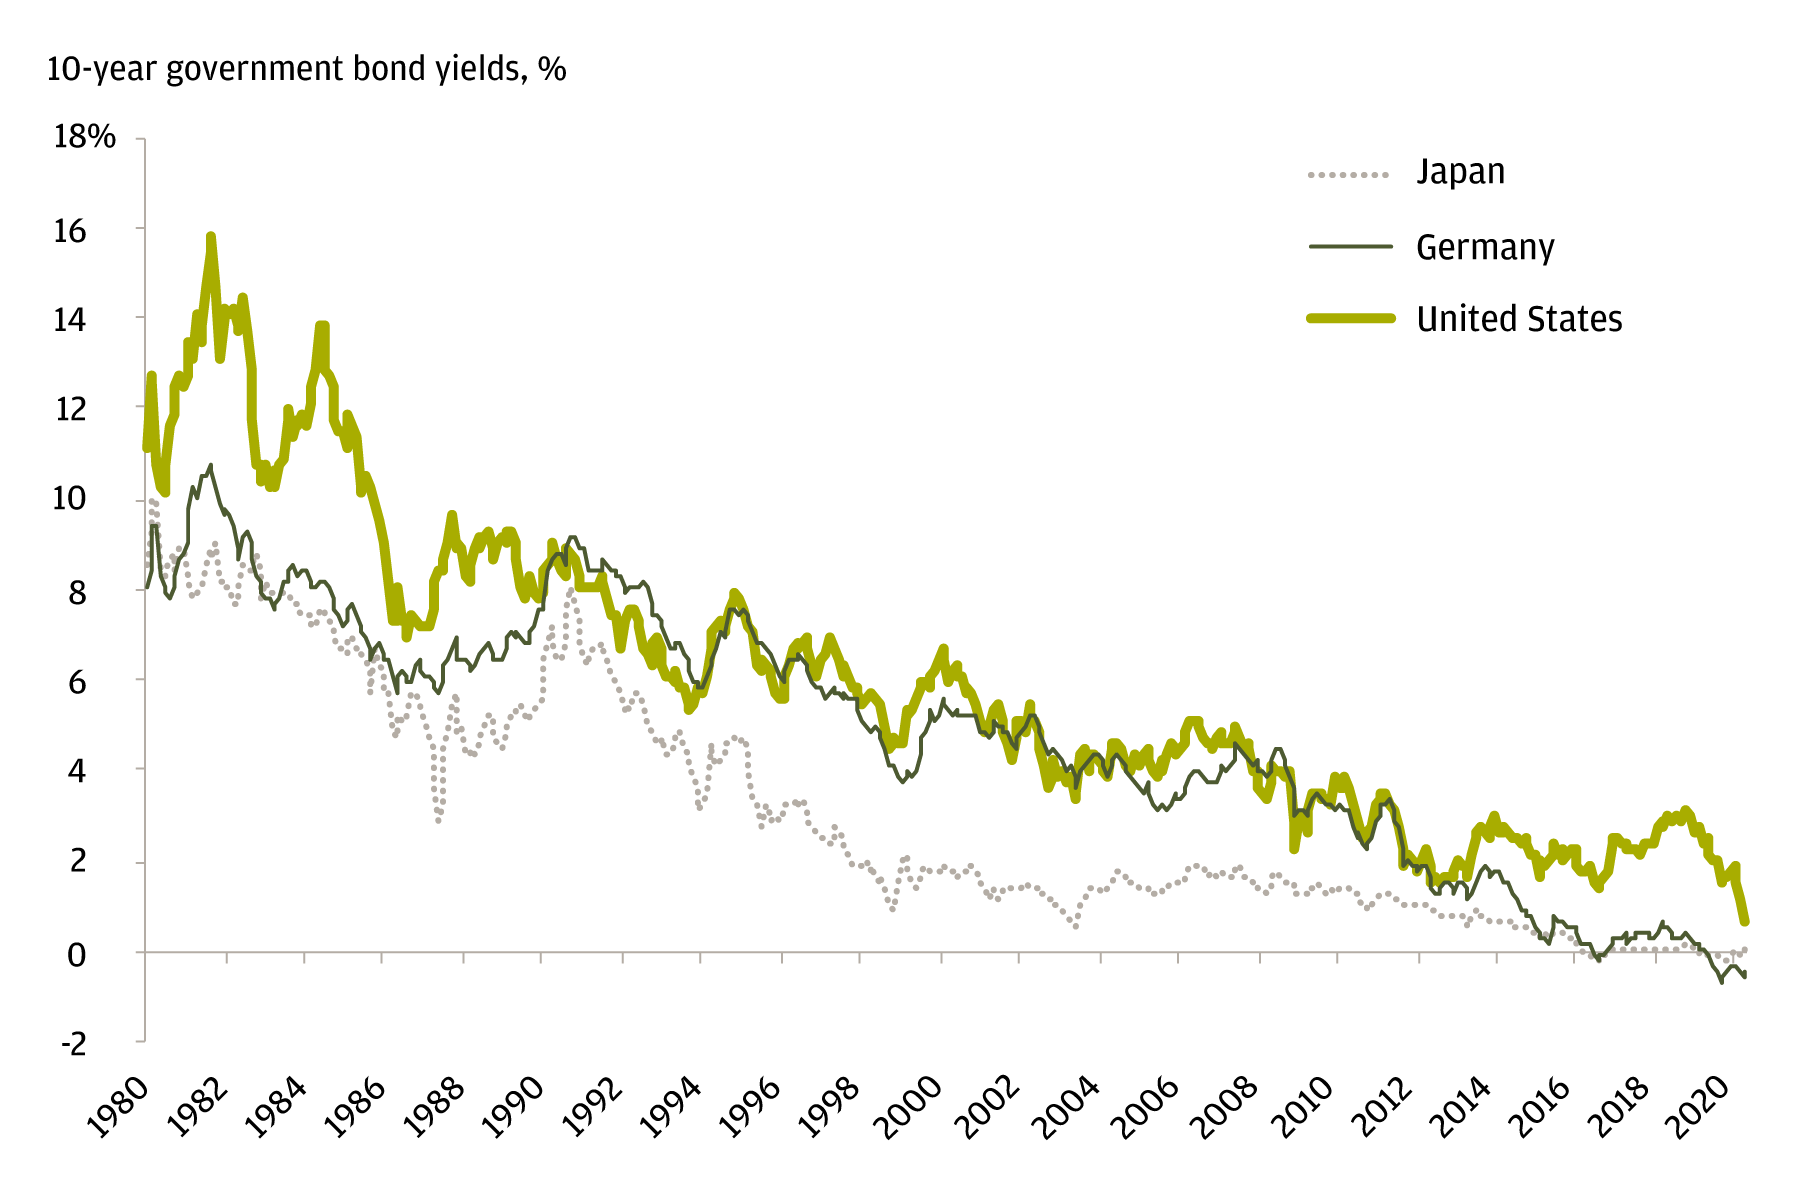 Line chart comparing 10-year government bond yields in Japan, Germany and the United States from 1980 to 2020. The chart highlights that yields have steadily fallen during this time period in all countries.